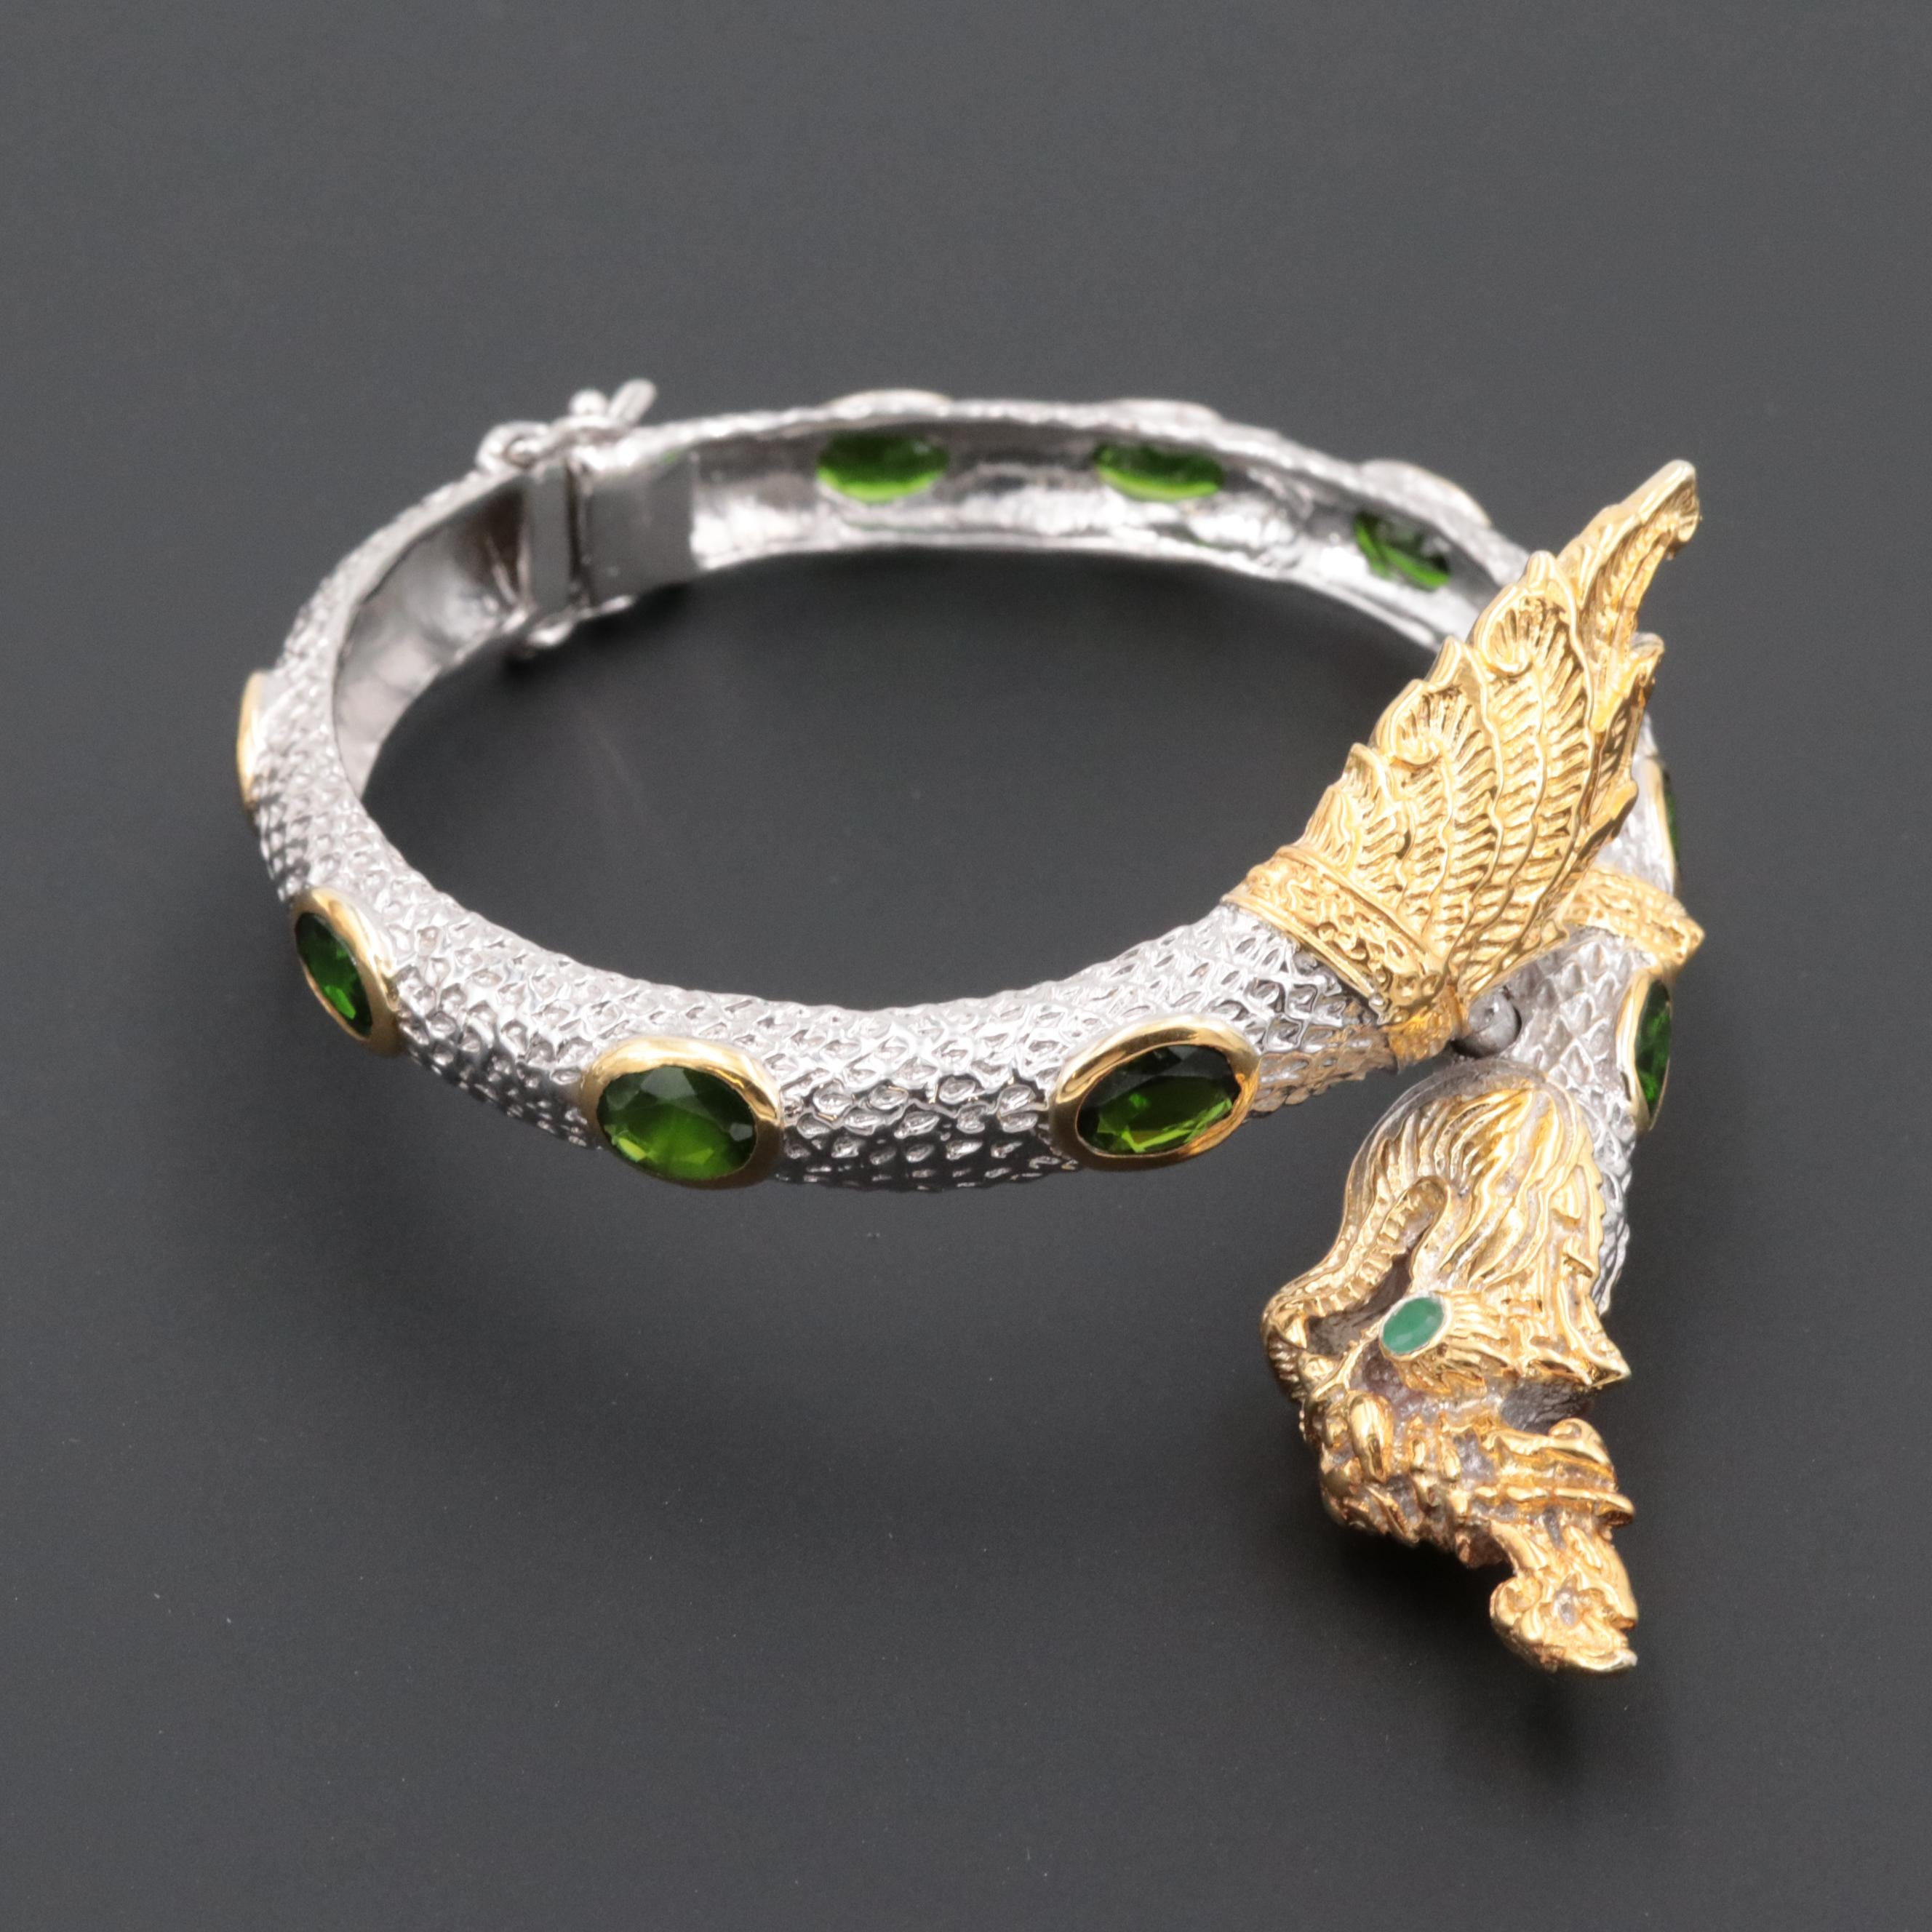 Sterling Silver Diopside and Emerald Dragon Bracelet with Gold Wash Accent